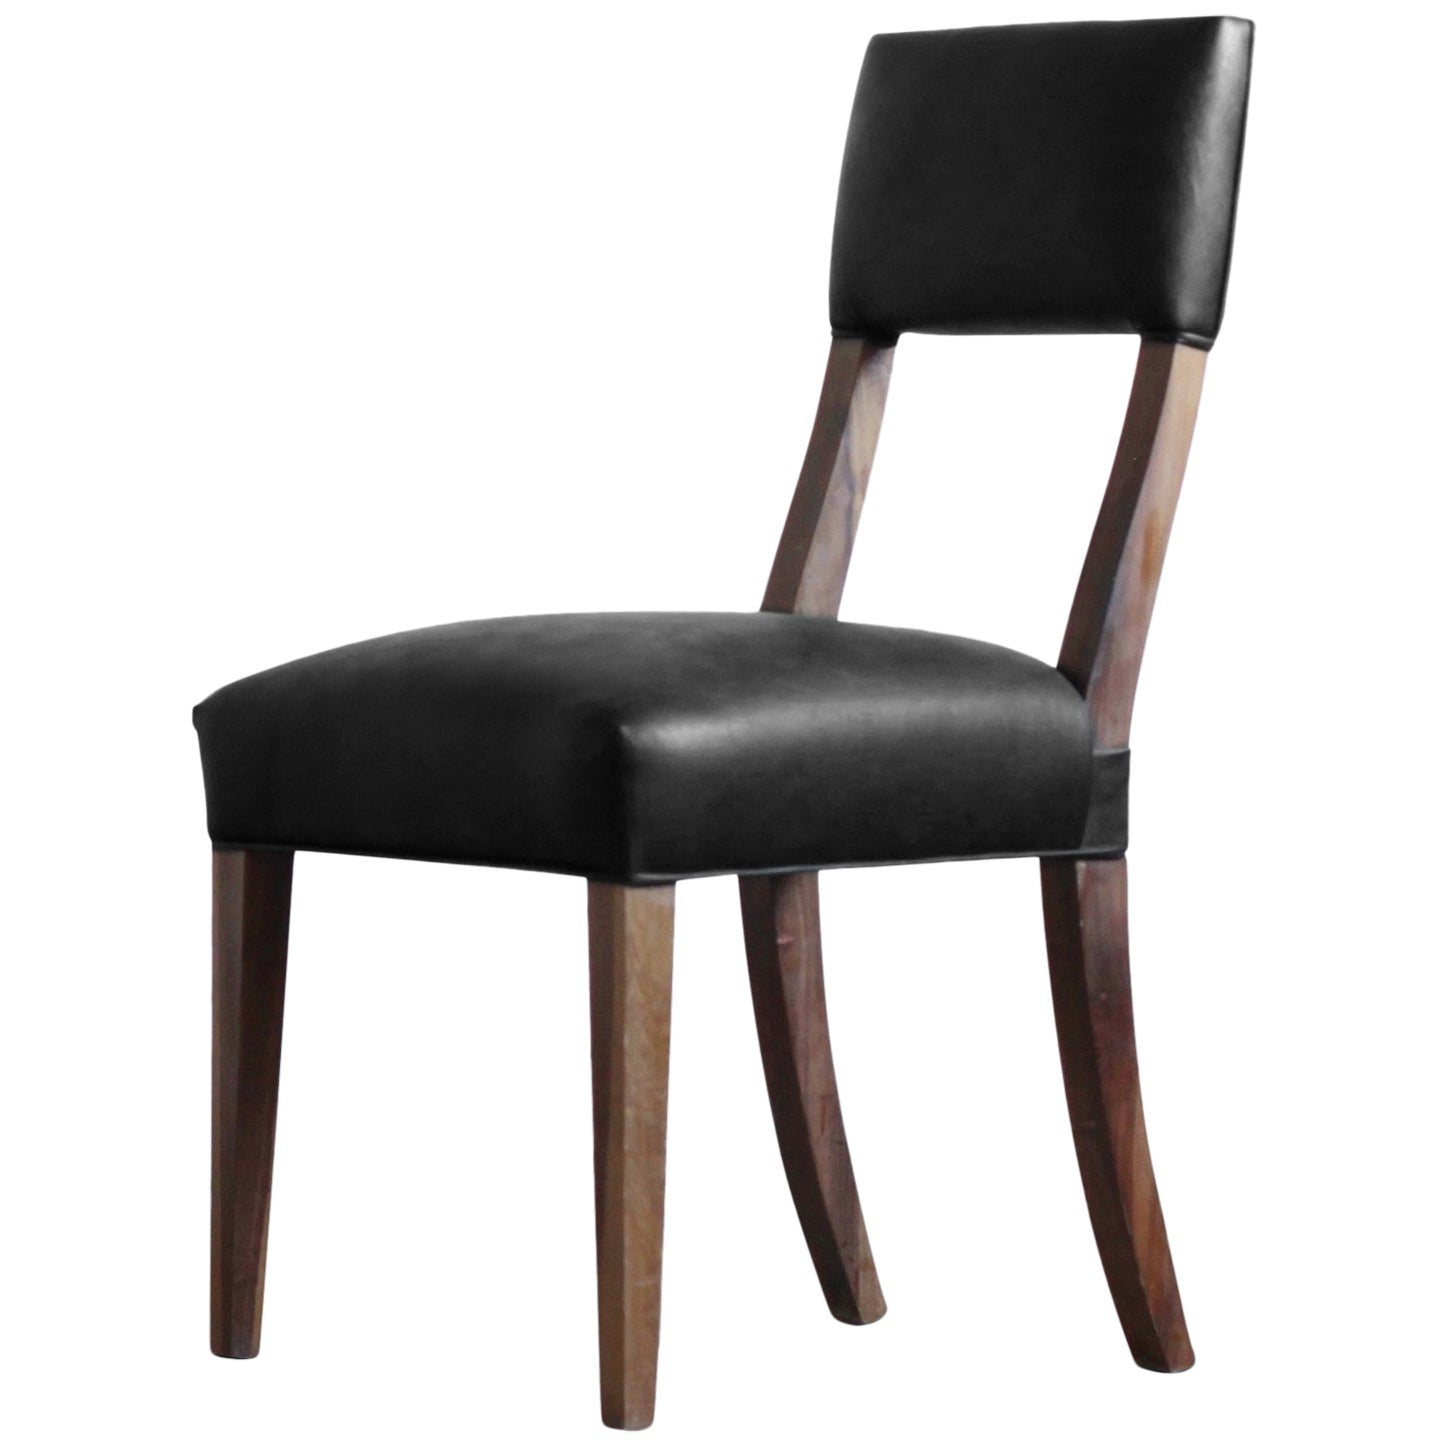 Luca High Back Dining Chair in Argentine Rosewood and Black Leather